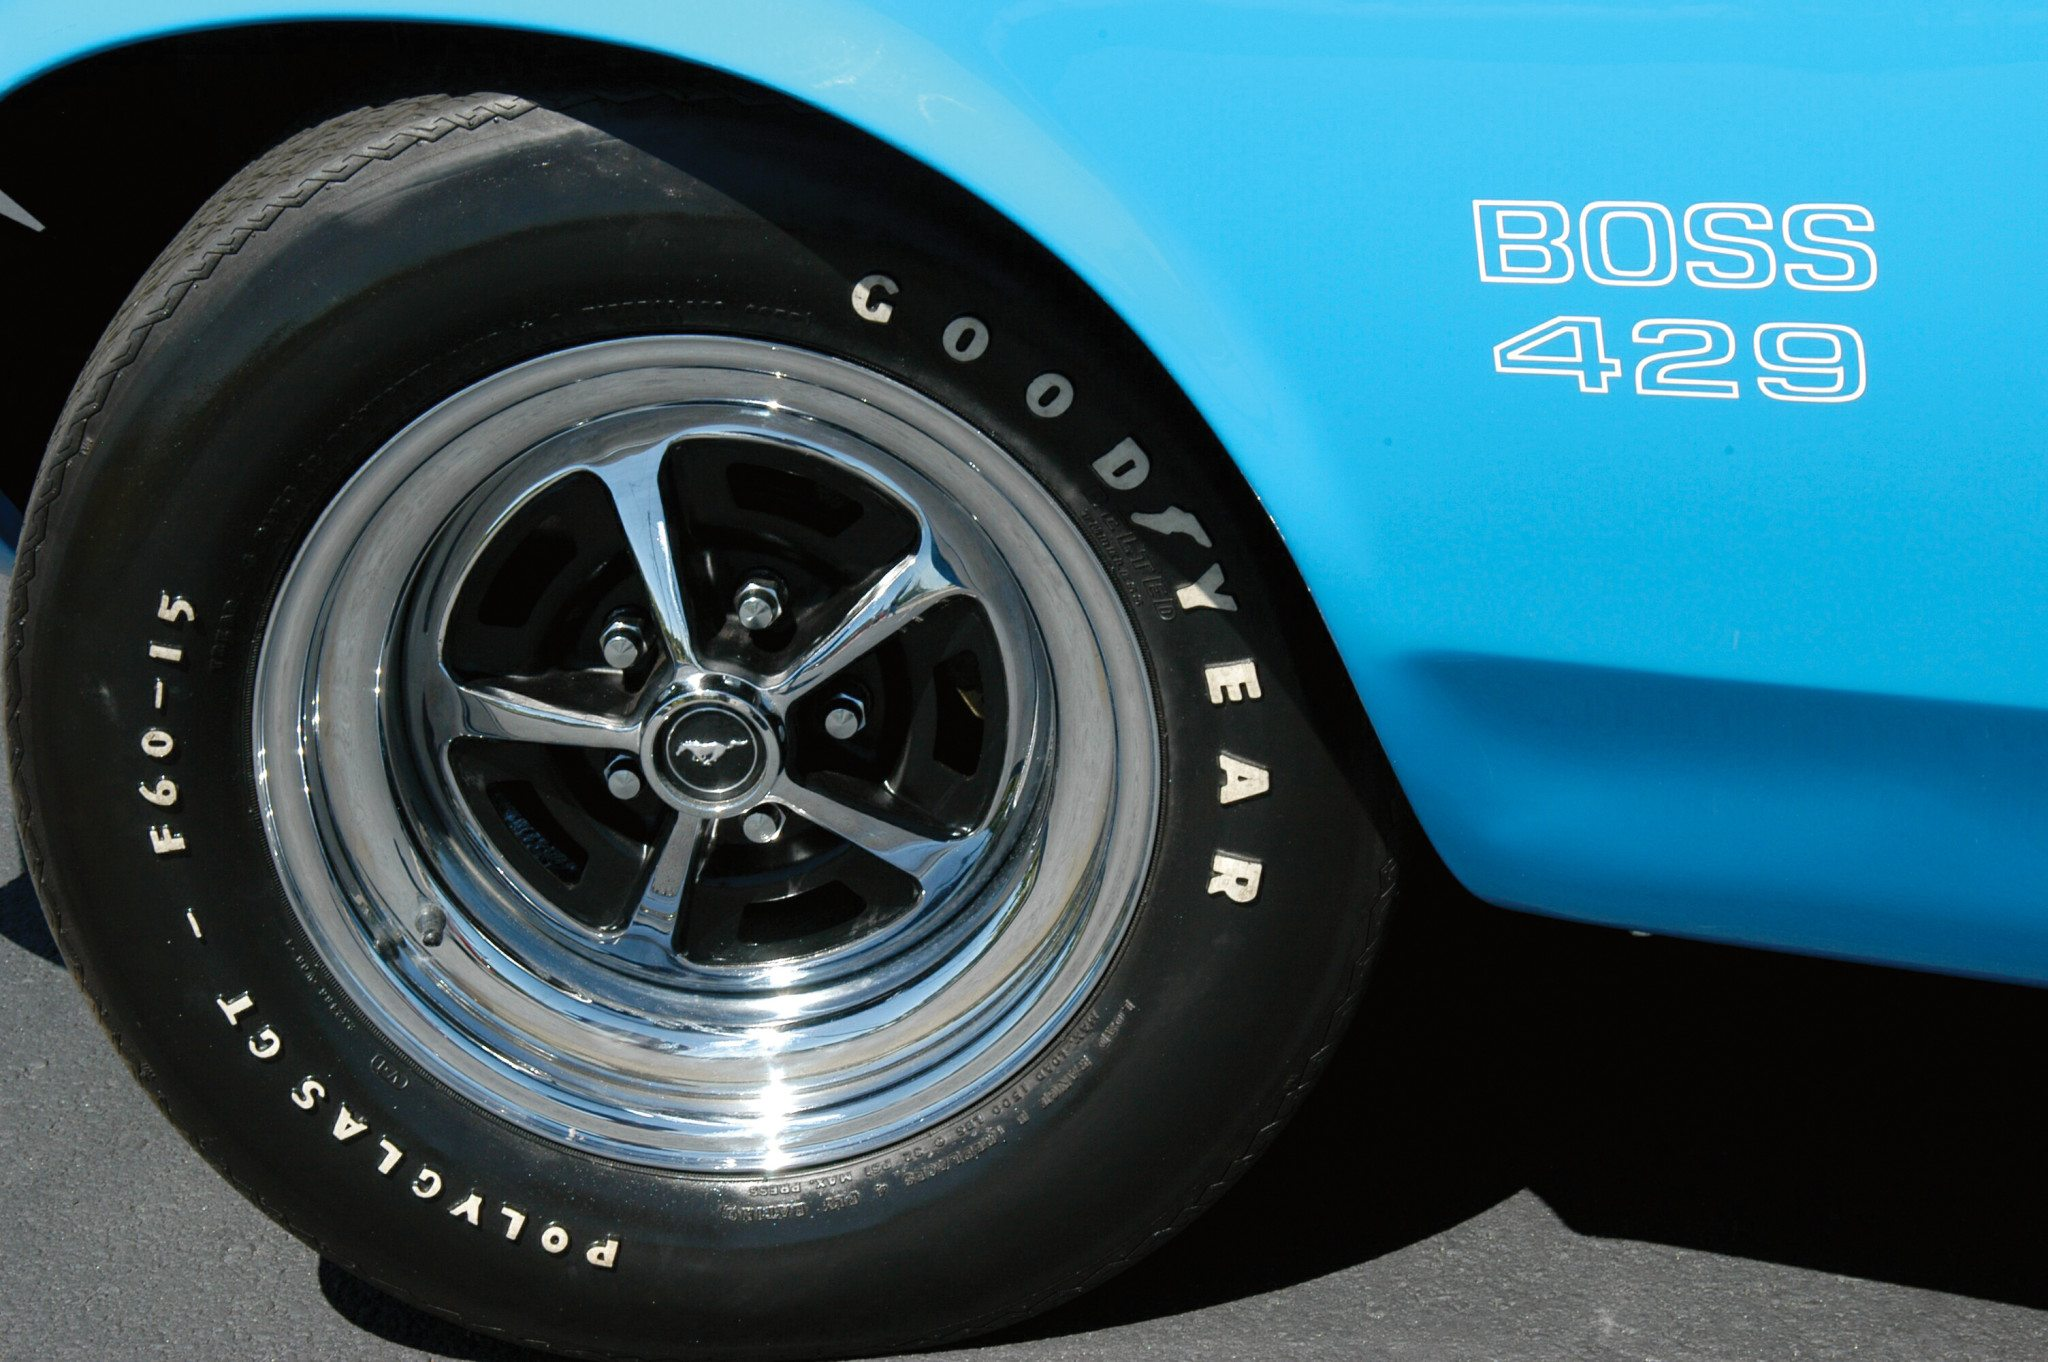 70's Boss 429 Mustang Decal and Wheel